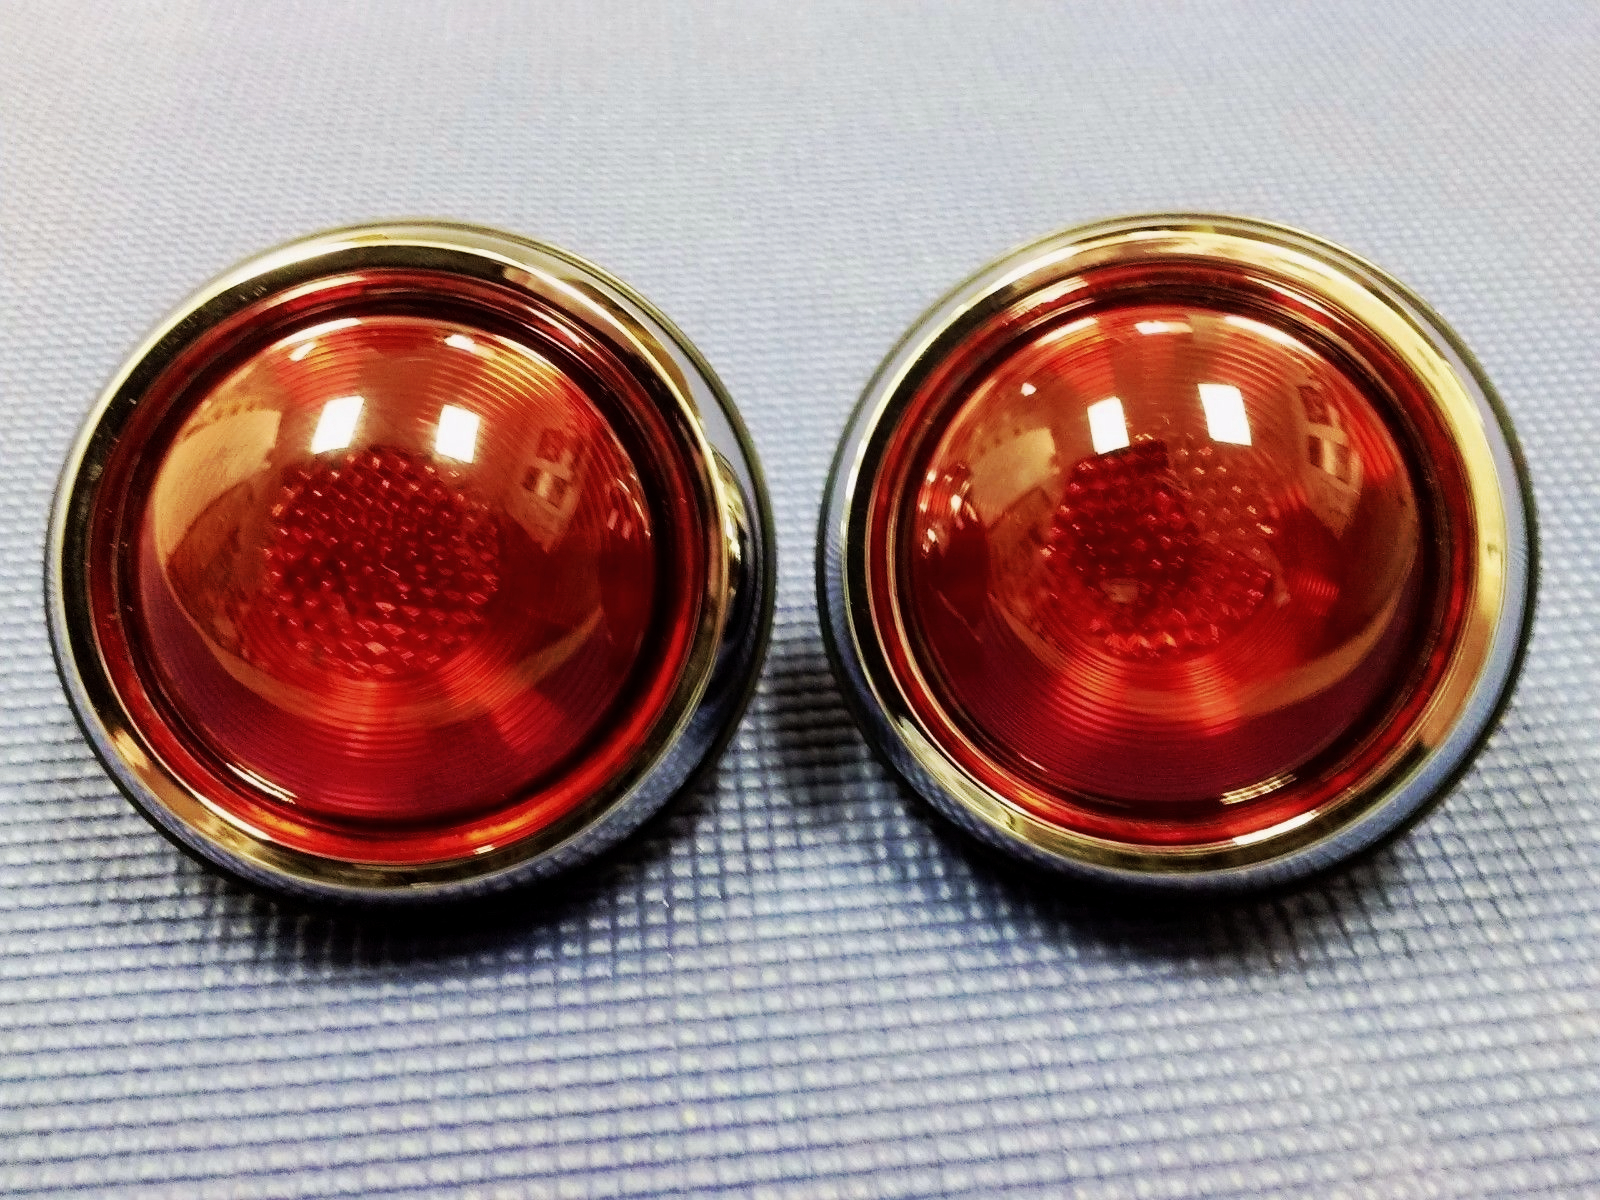 HOT ROD VINTAGE RAT ROD CUSTOM PONTIAC REAR TAIL CHROME LIGHT SET W ...